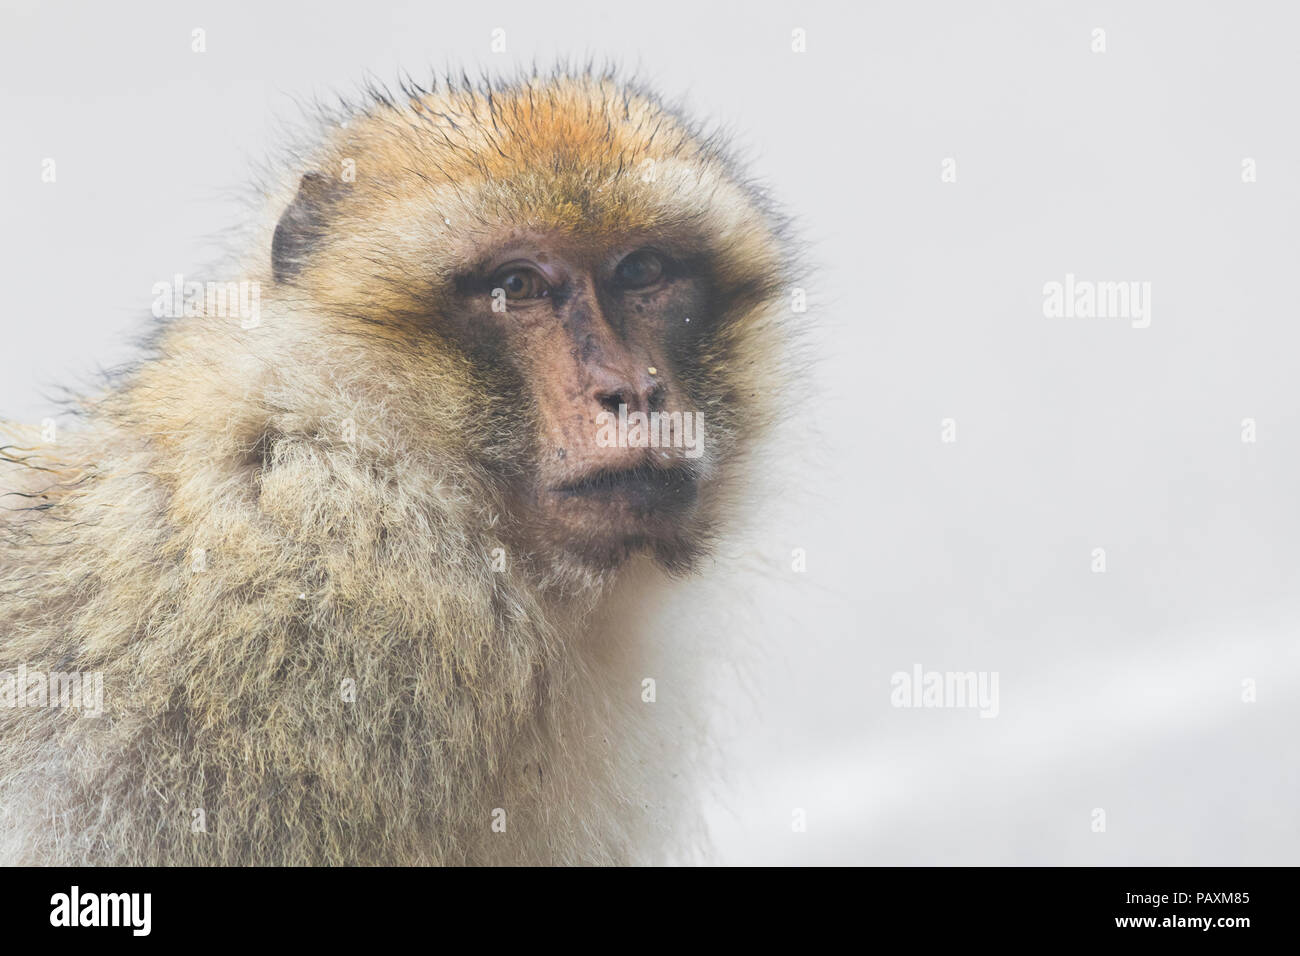 Barbary Macaque (Macaca sylvanus), portrait of individual in the fog - Stock Image